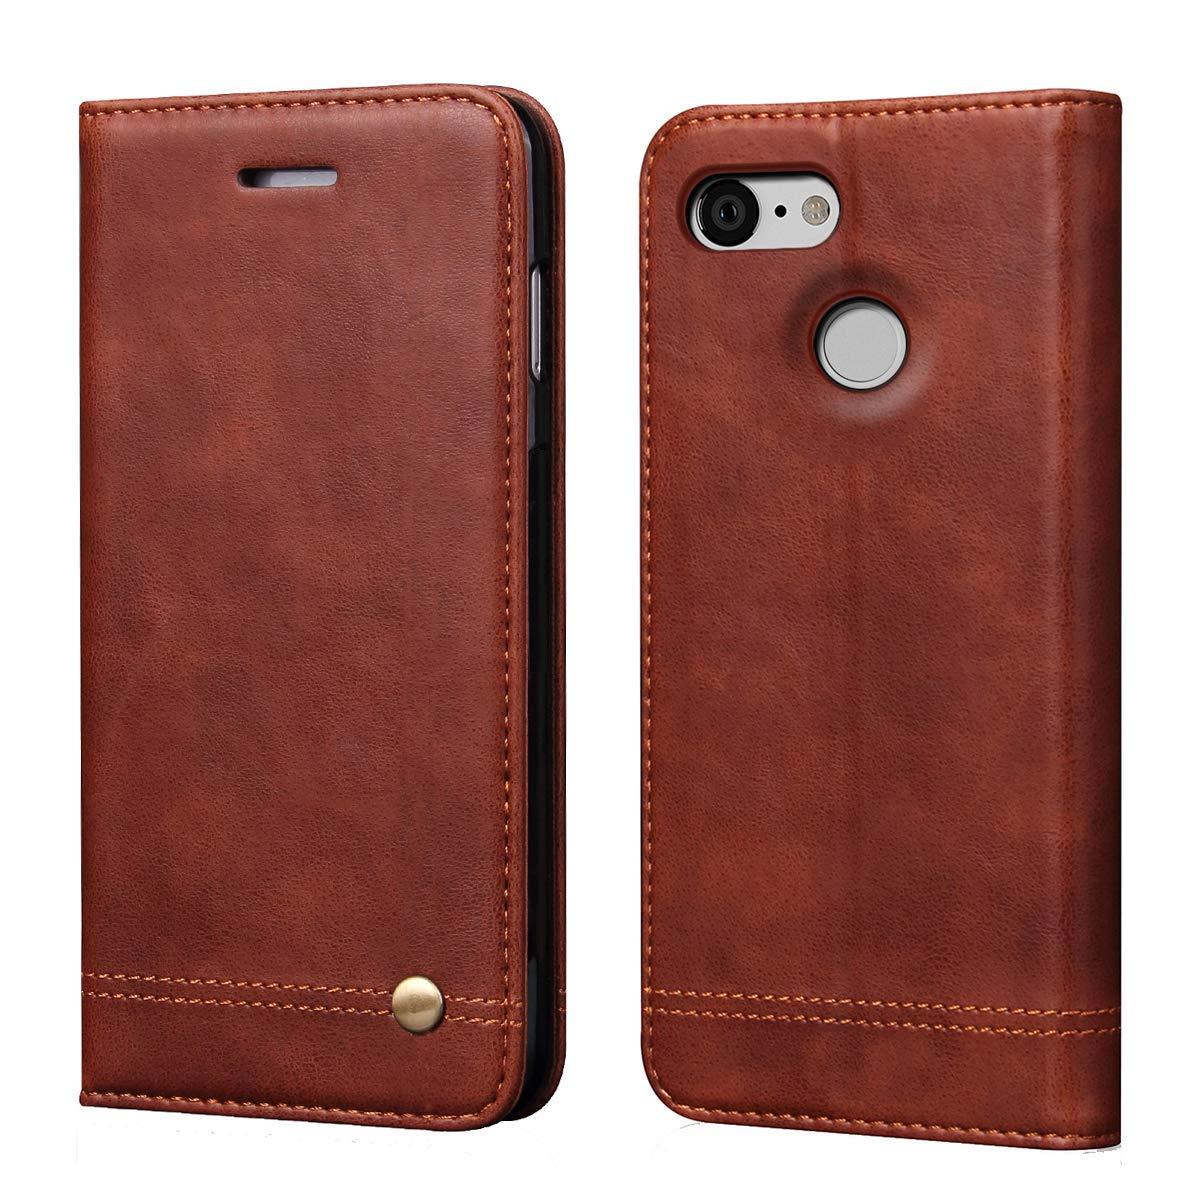 free-case-leather-pixel-3-case.jpg